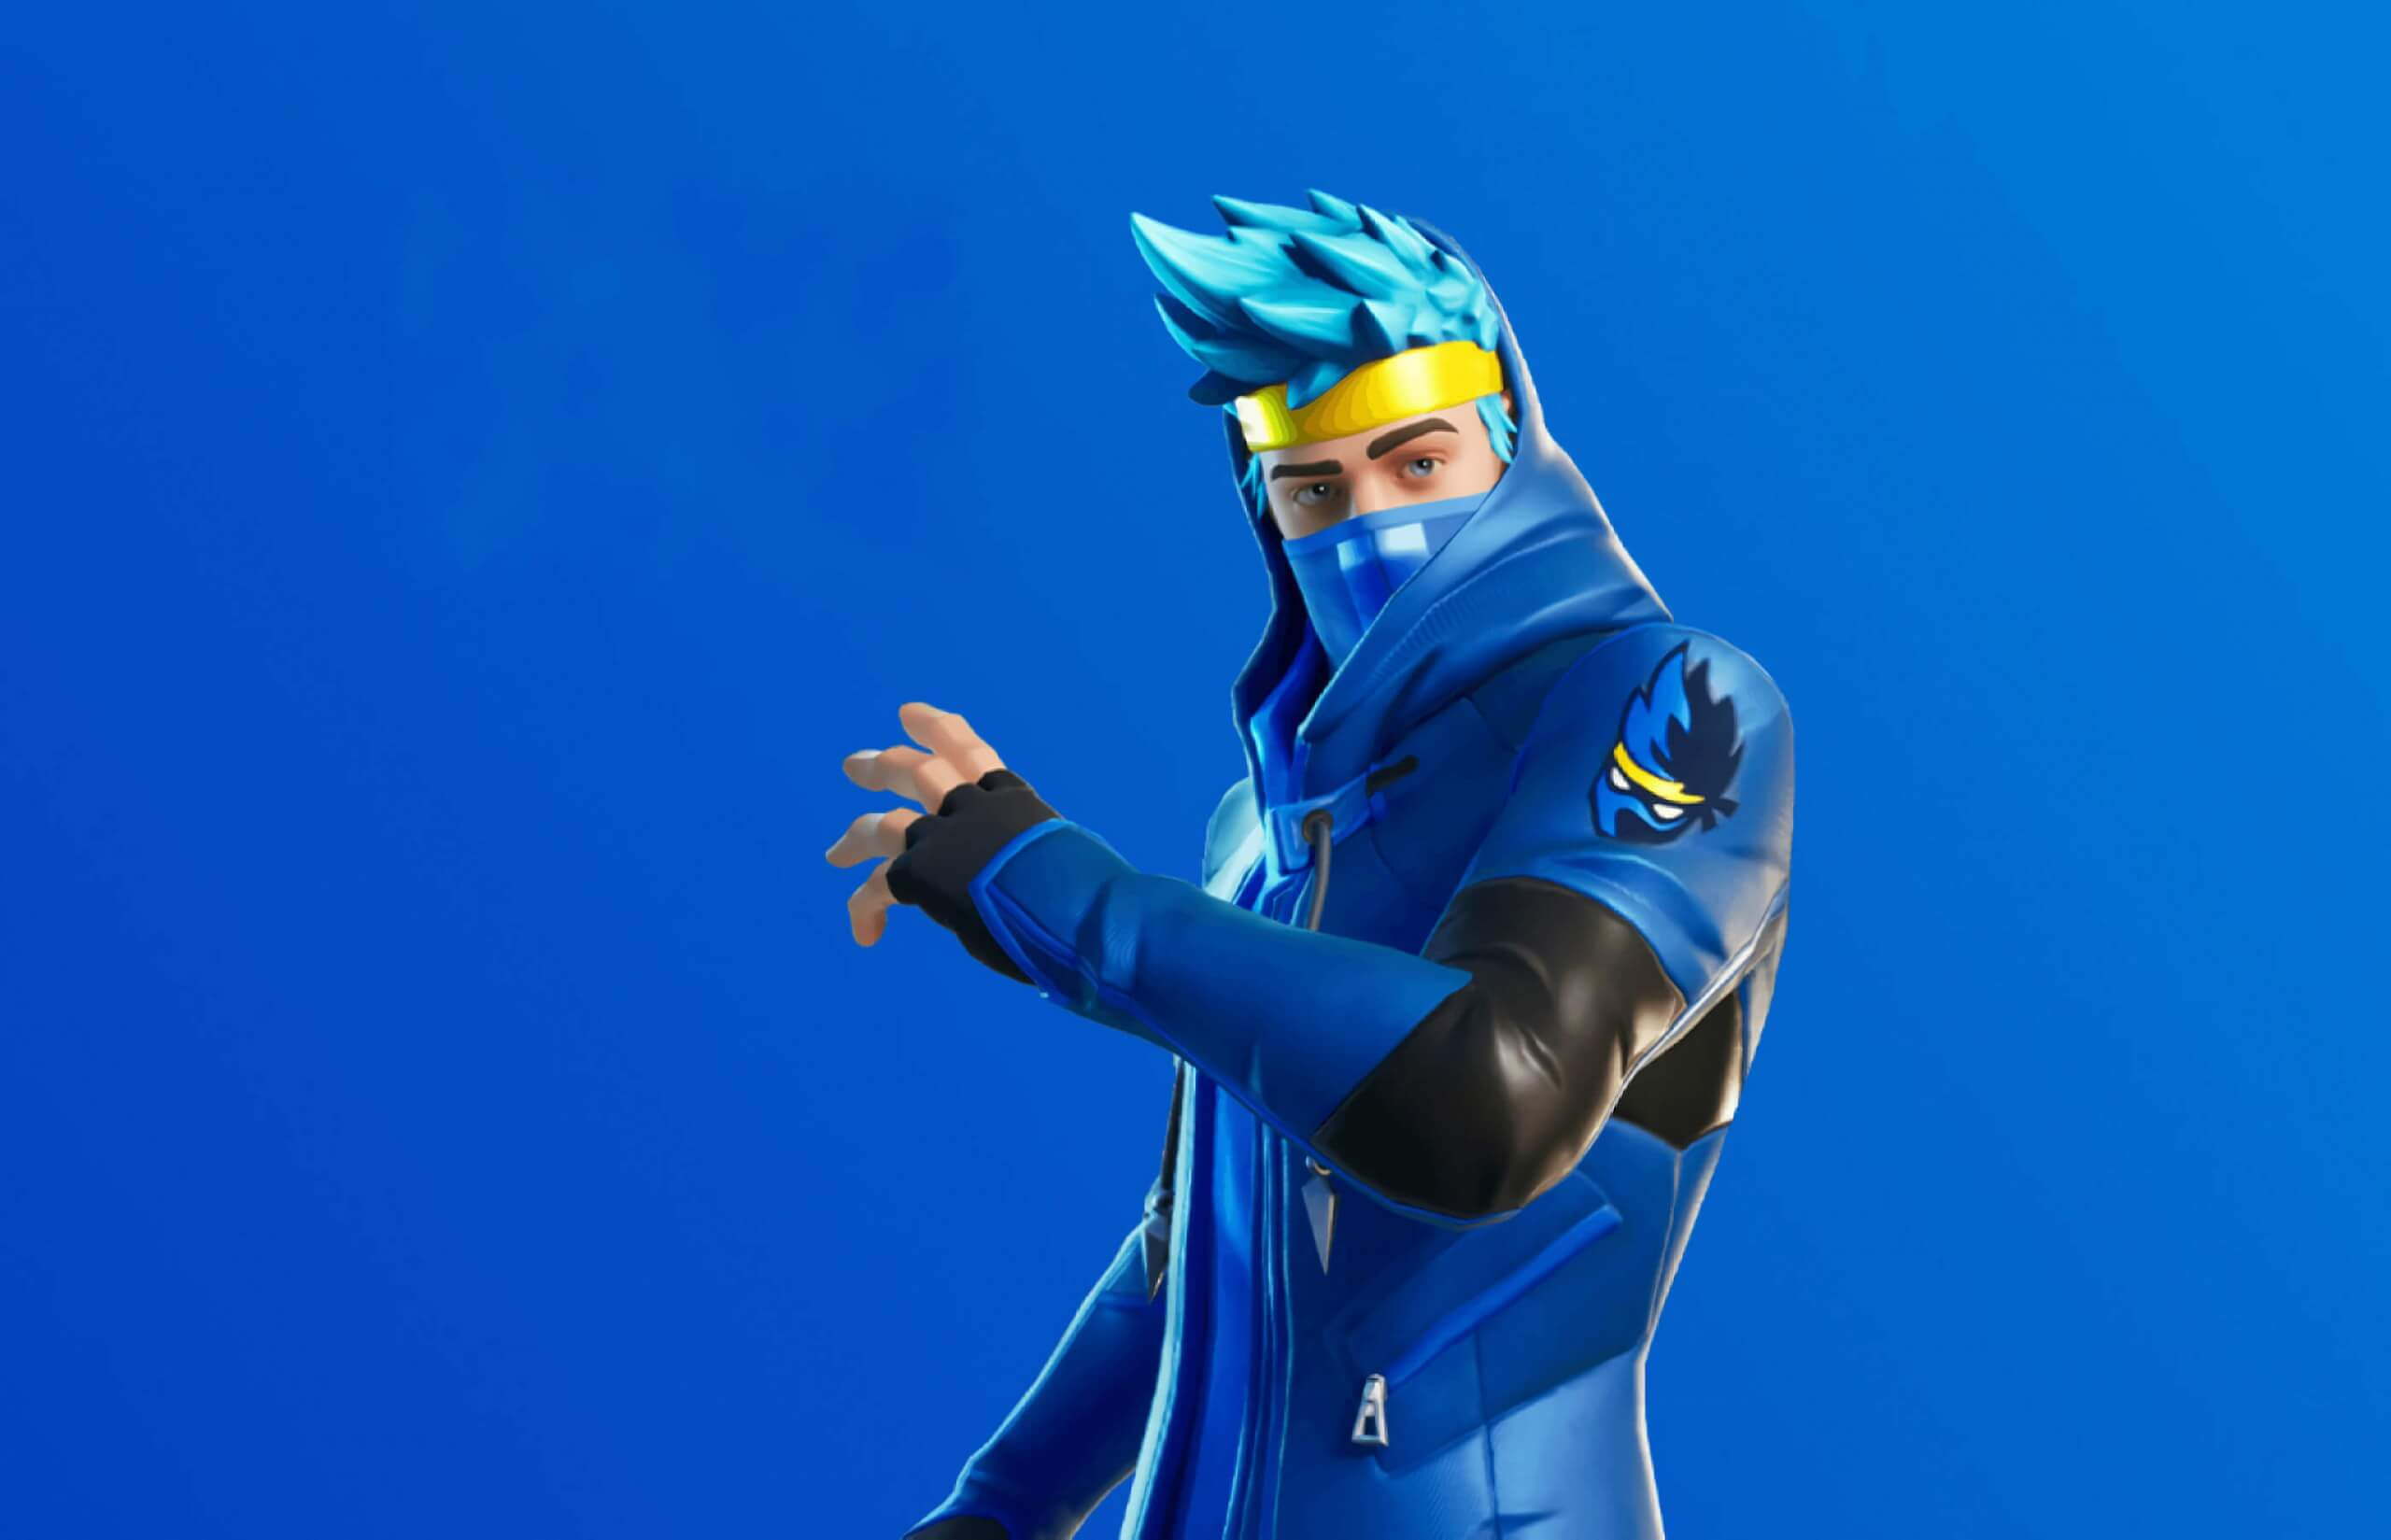 """The famous streamer Tyler """"Ninja"""" Blevins ha received has been recognized by Epic with a customized skin"""